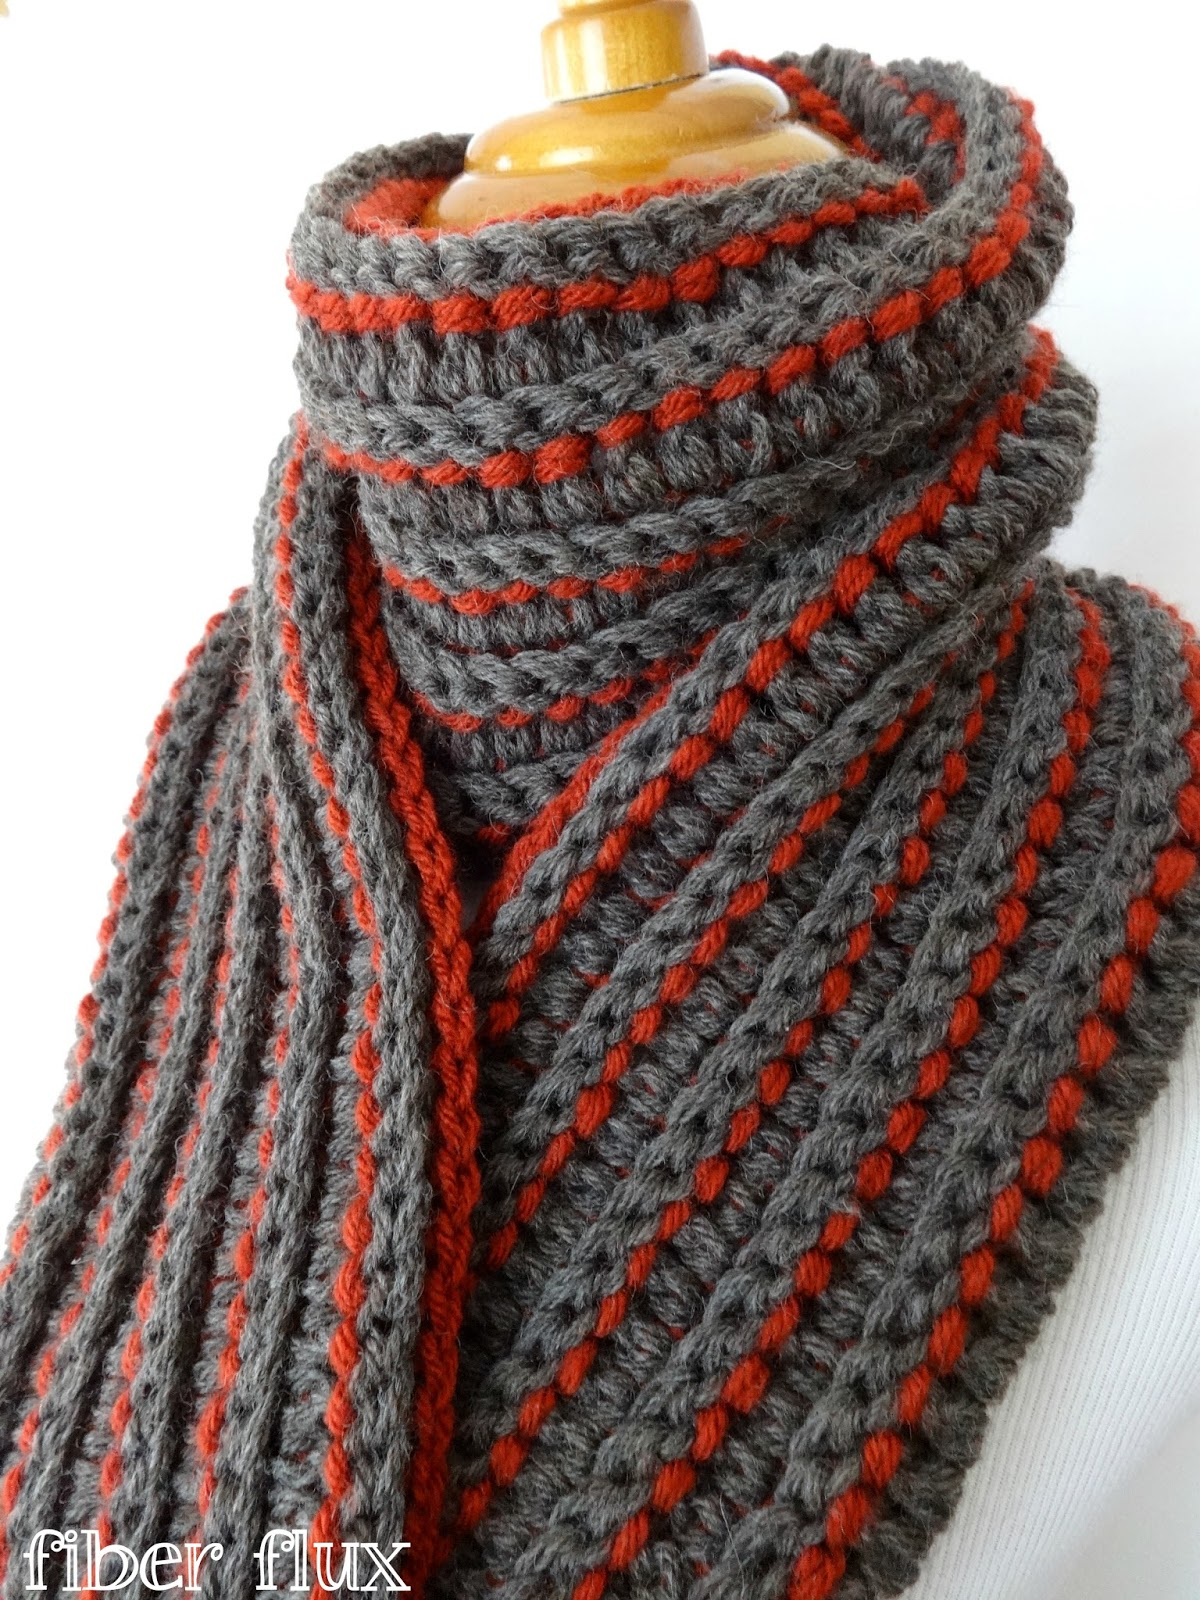 Free Crochet Patterns For Dressy Scarves : Fiber Flux: Free Crochet Pattern...The Every Man Scarf